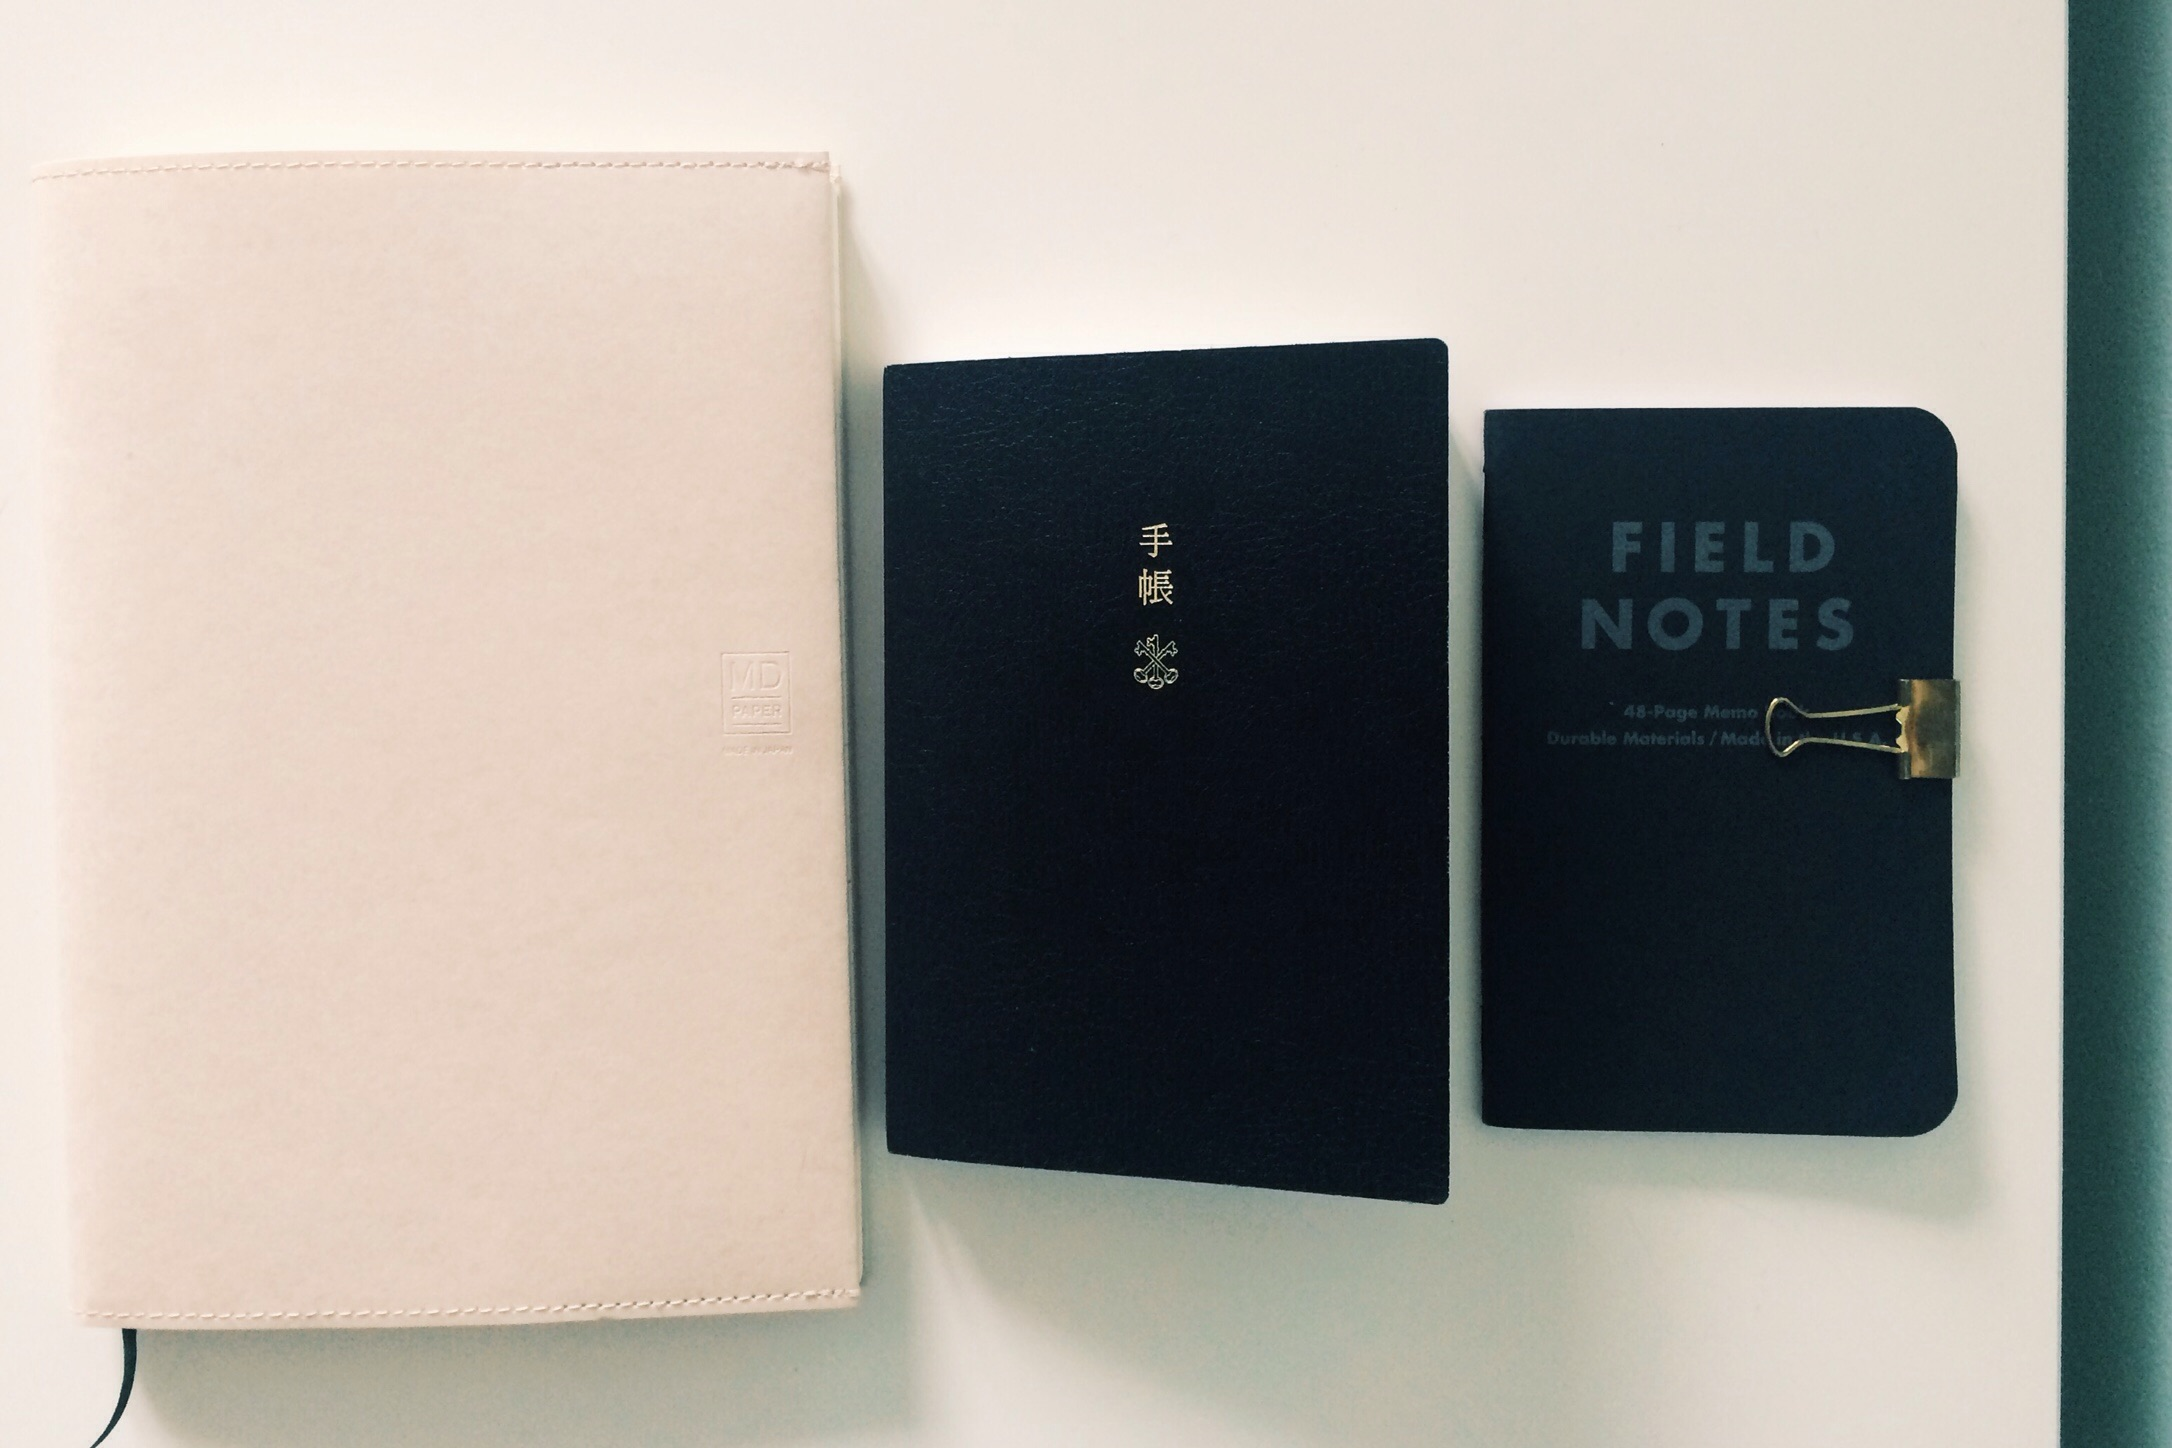 Left to right - Midori MD A5 lined notebook, Hobonichi Techo, Field Notes Pitch Black